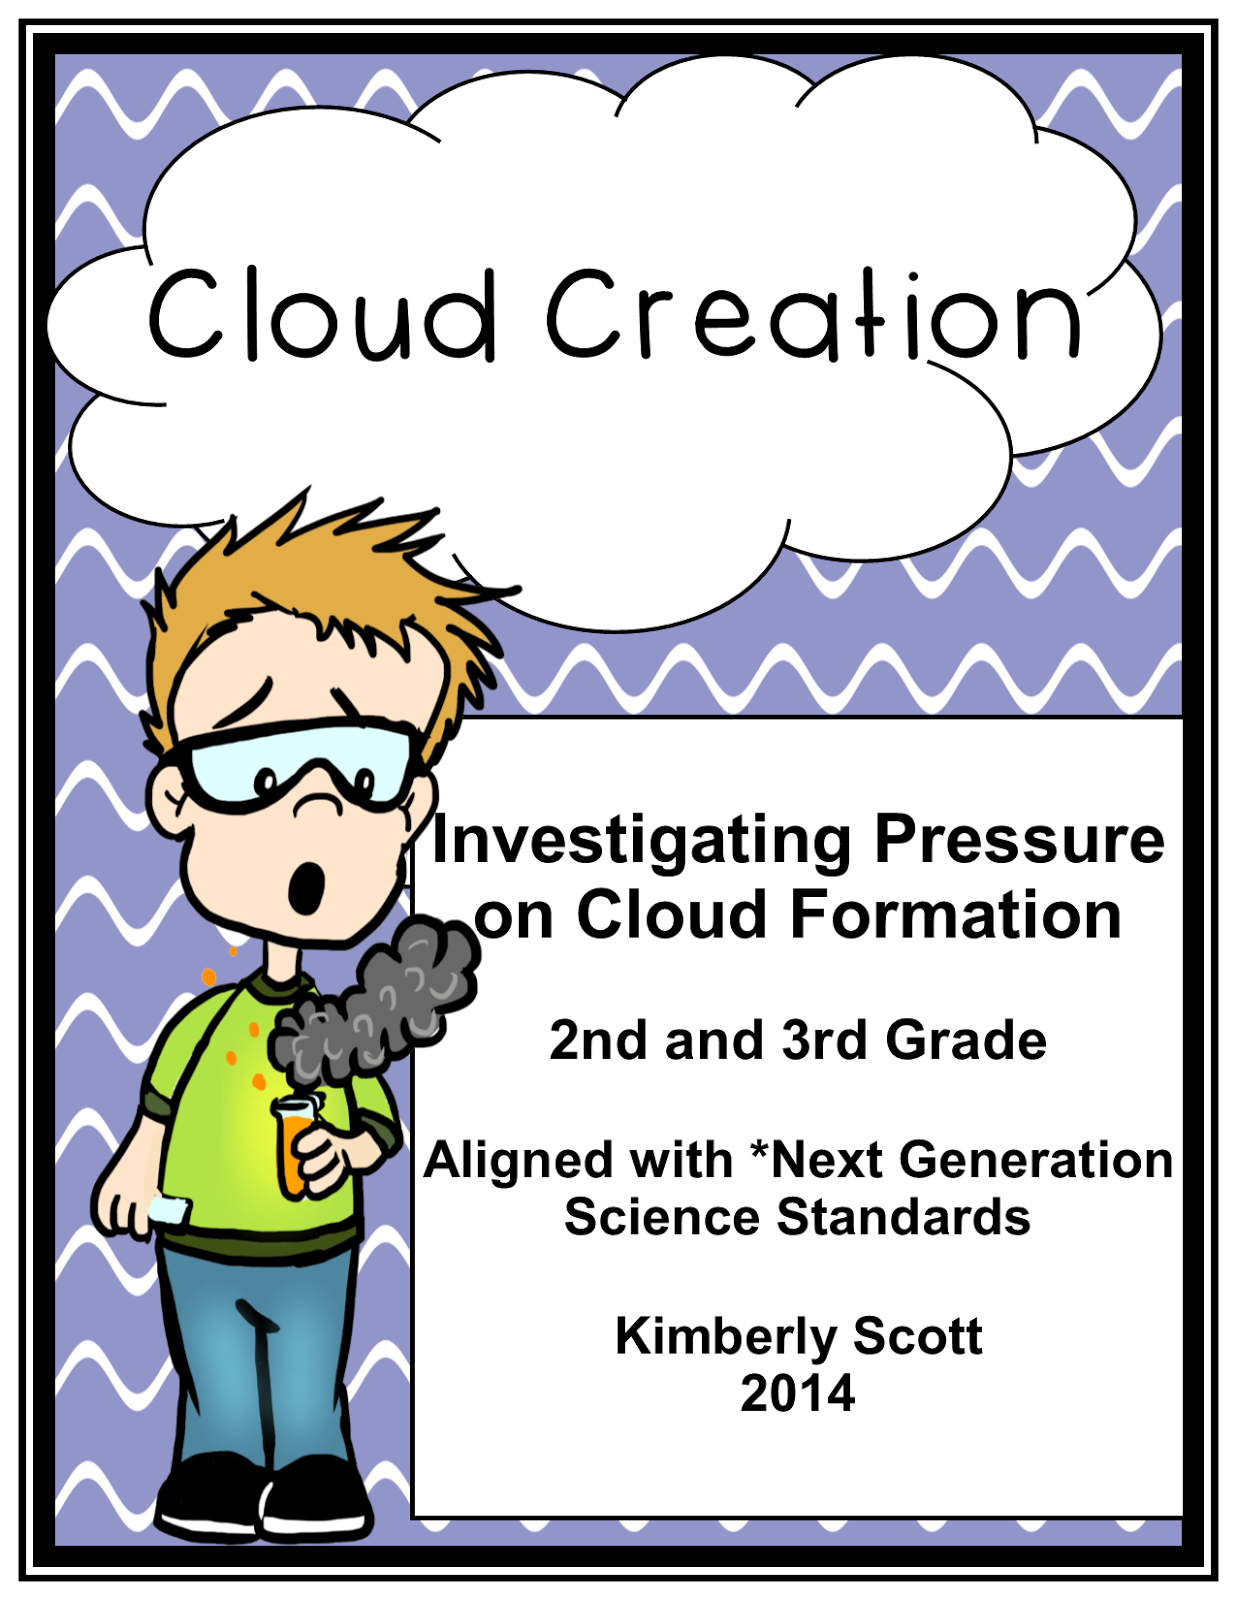 https://www.teacherspayteachers.com/Product/Cloud-Creation-Investigating-Pressure-on-Cloud-Formation-492709